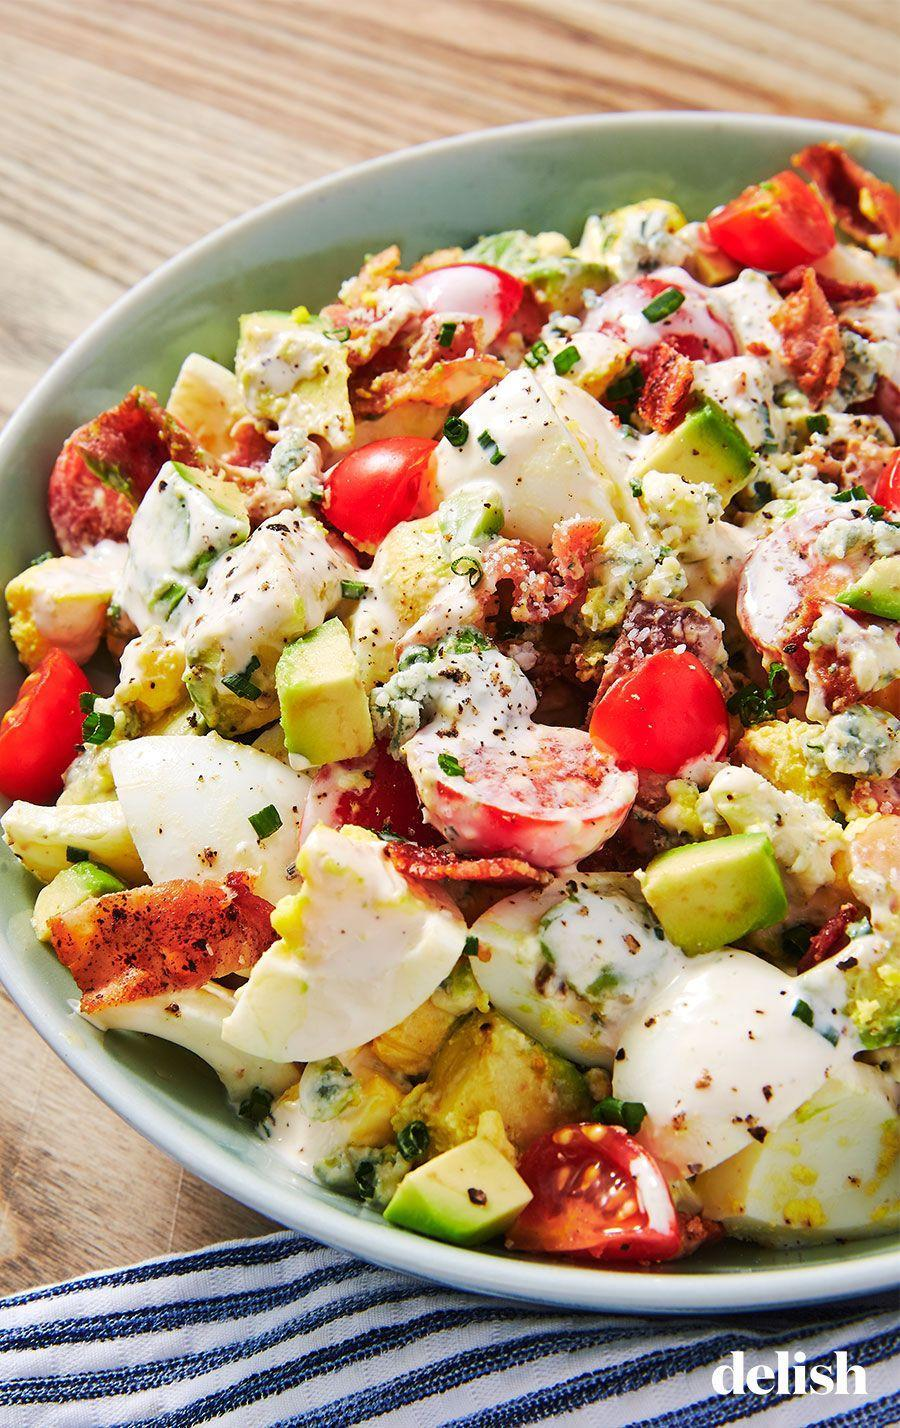 "<p>Such an easy starter to throw together. </p><p>Get the recipe from <a href=""https://www.delish.com/cooking/recipe-ideas/a19484613/cobb-egg-salad-recipe/"" rel=""nofollow noopener"" target=""_blank"" data-ylk=""slk:Delish"" class=""link rapid-noclick-resp"">Delish</a>.</p>"